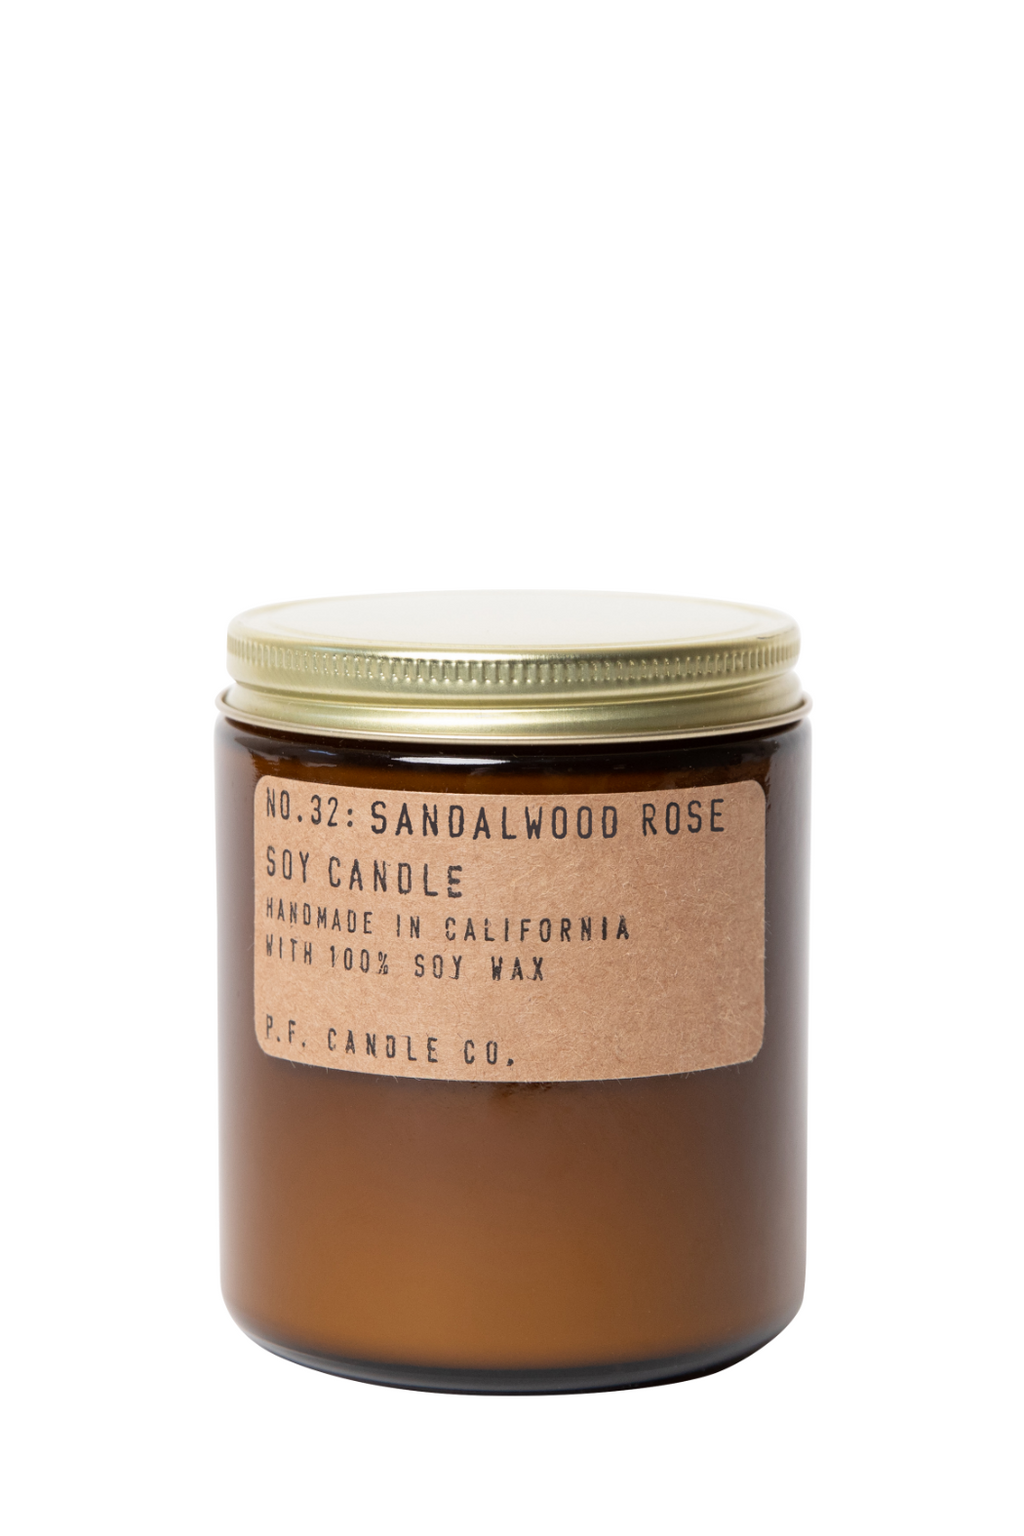 P.F. Candle Co Sandalwood Rose Candle